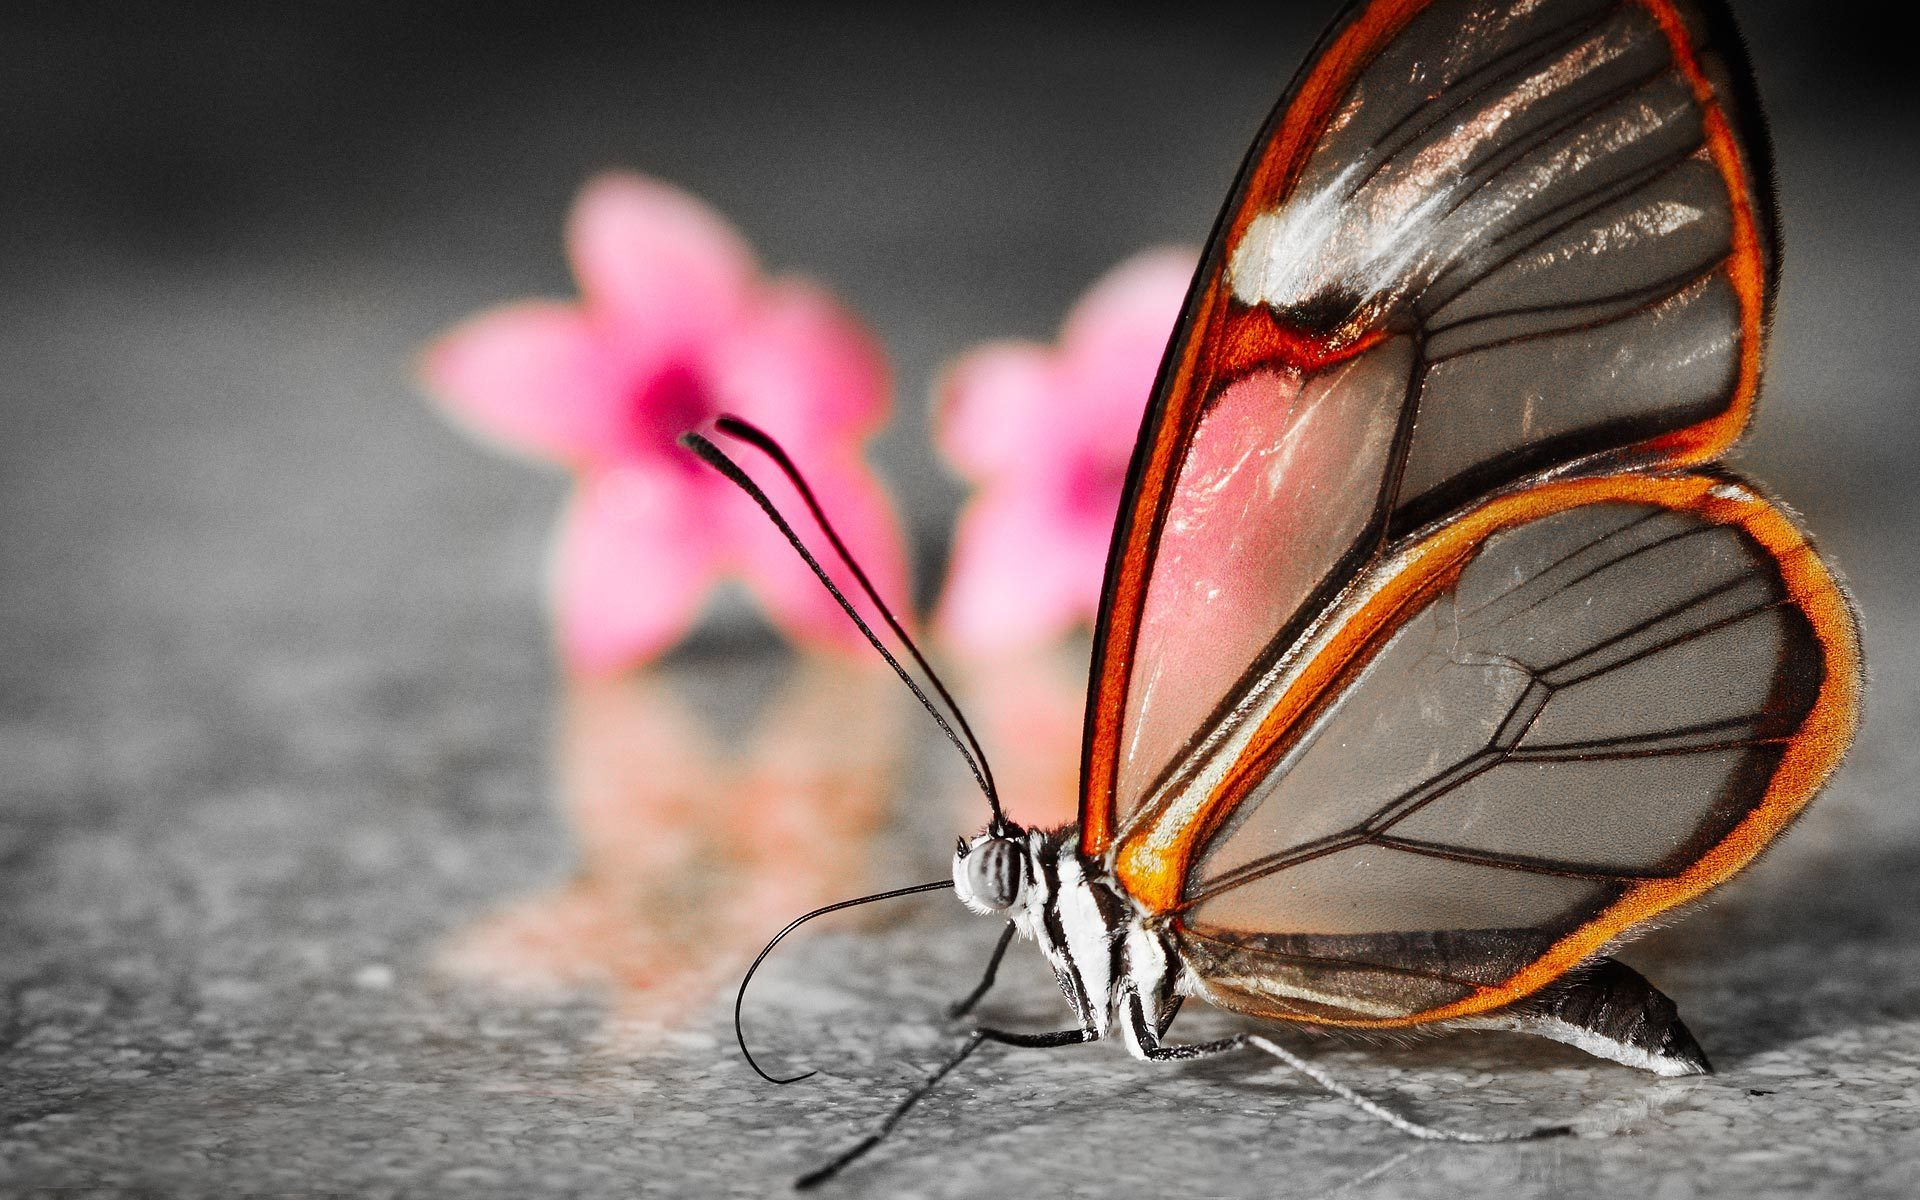 is under the 3d wallpapers category of hd wallpapers 3d butterfly 1920x1200